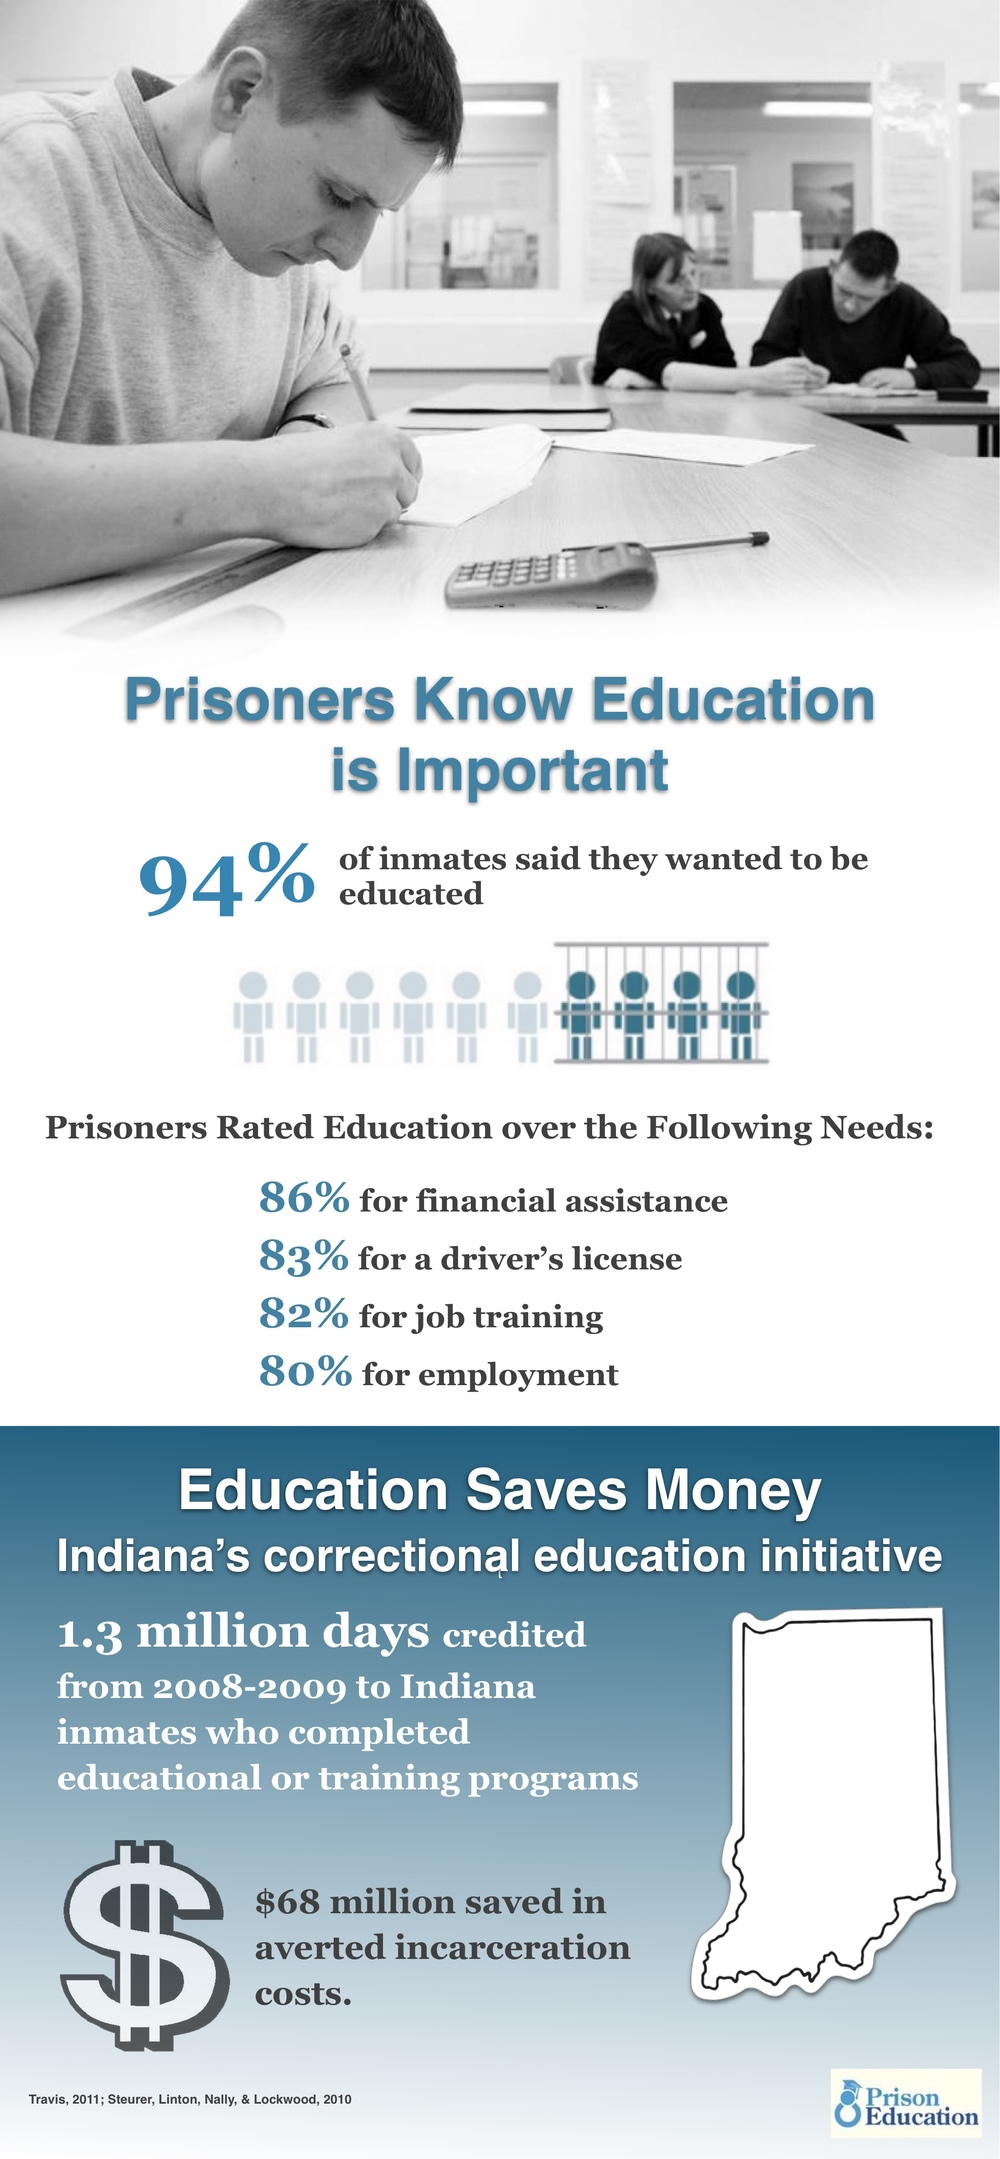 Prisoners want to build a better future, and education is often a positive experience.